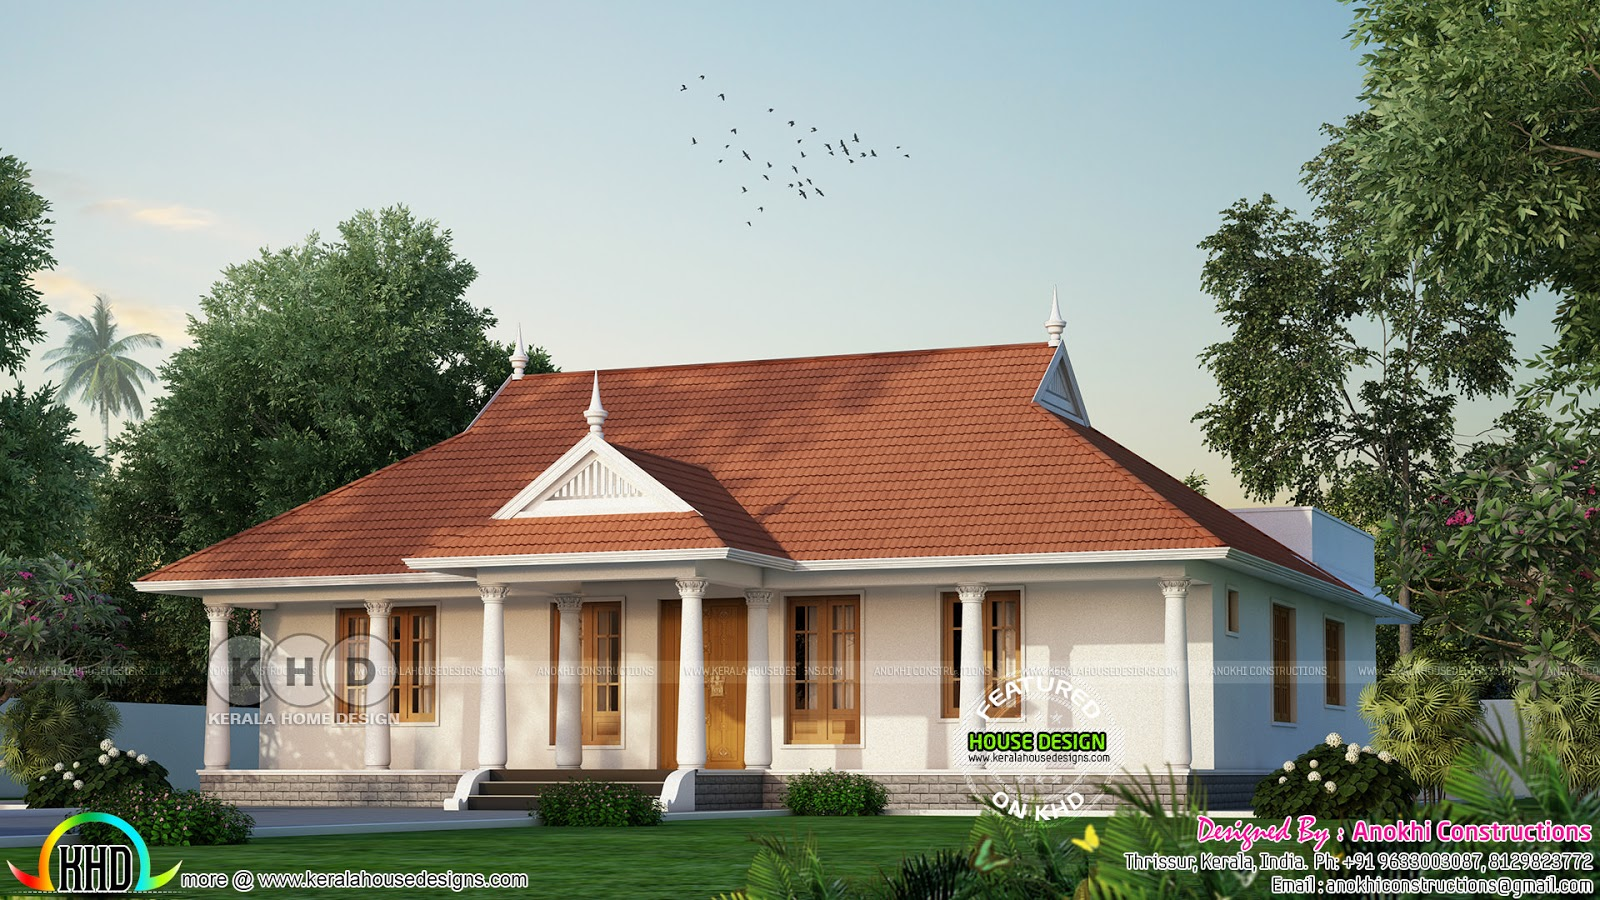 30 lakhs cost estimated traditional kerala home kerala for House plans with estimated cost to build in kerala